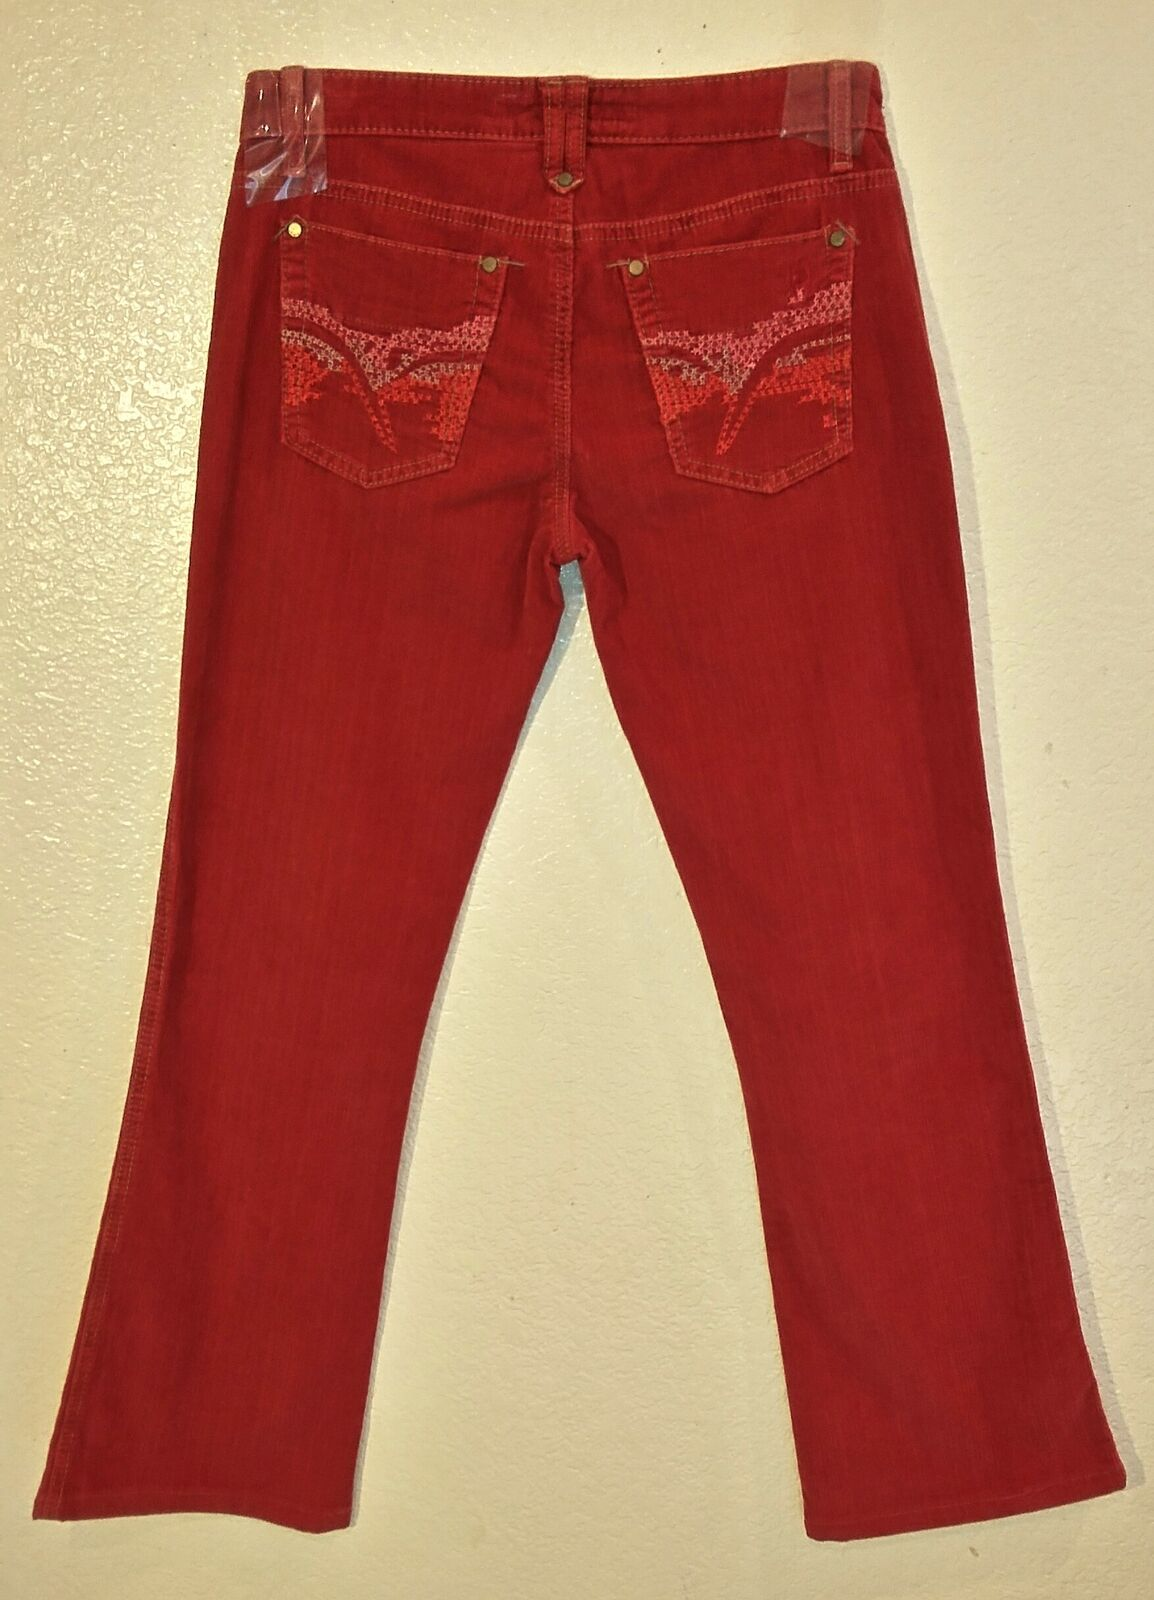 NEW Joe's Jeans Bootcut Corduroy Pants Womens Size 26 - Red C3560